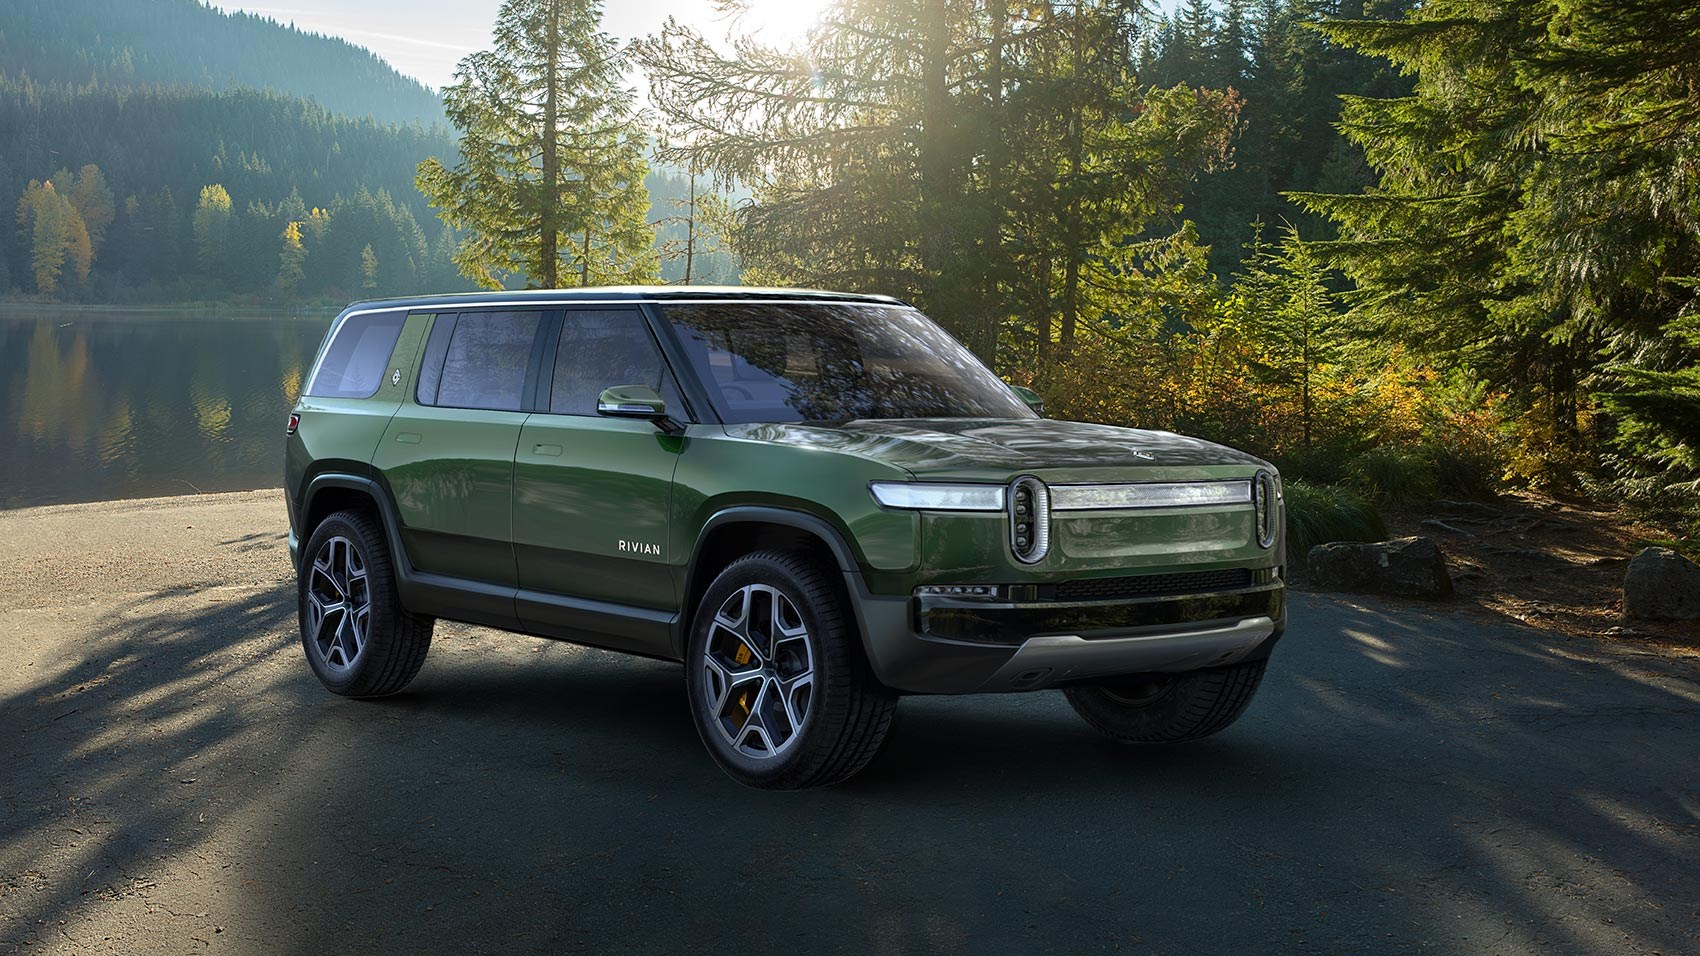 Rivian receives $500 million investment to help Ford develop electric trucks